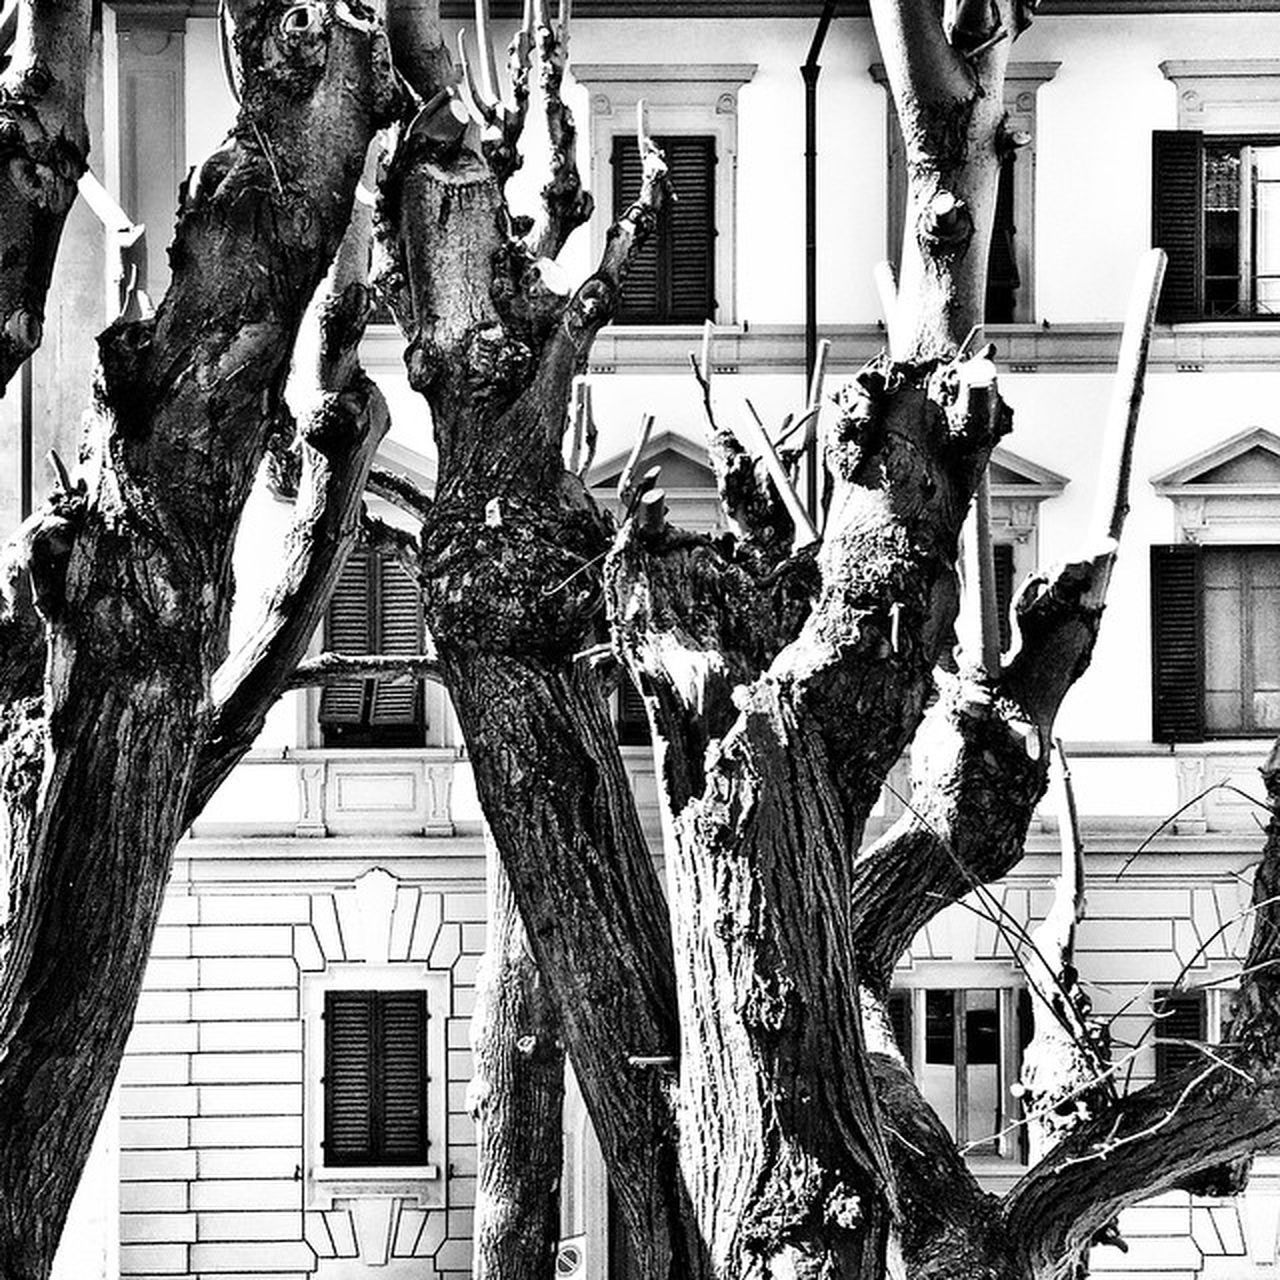 building exterior, architecture, built structure, tree, tree trunk, no people, low angle view, statue, outdoors, sculpture, day, branch